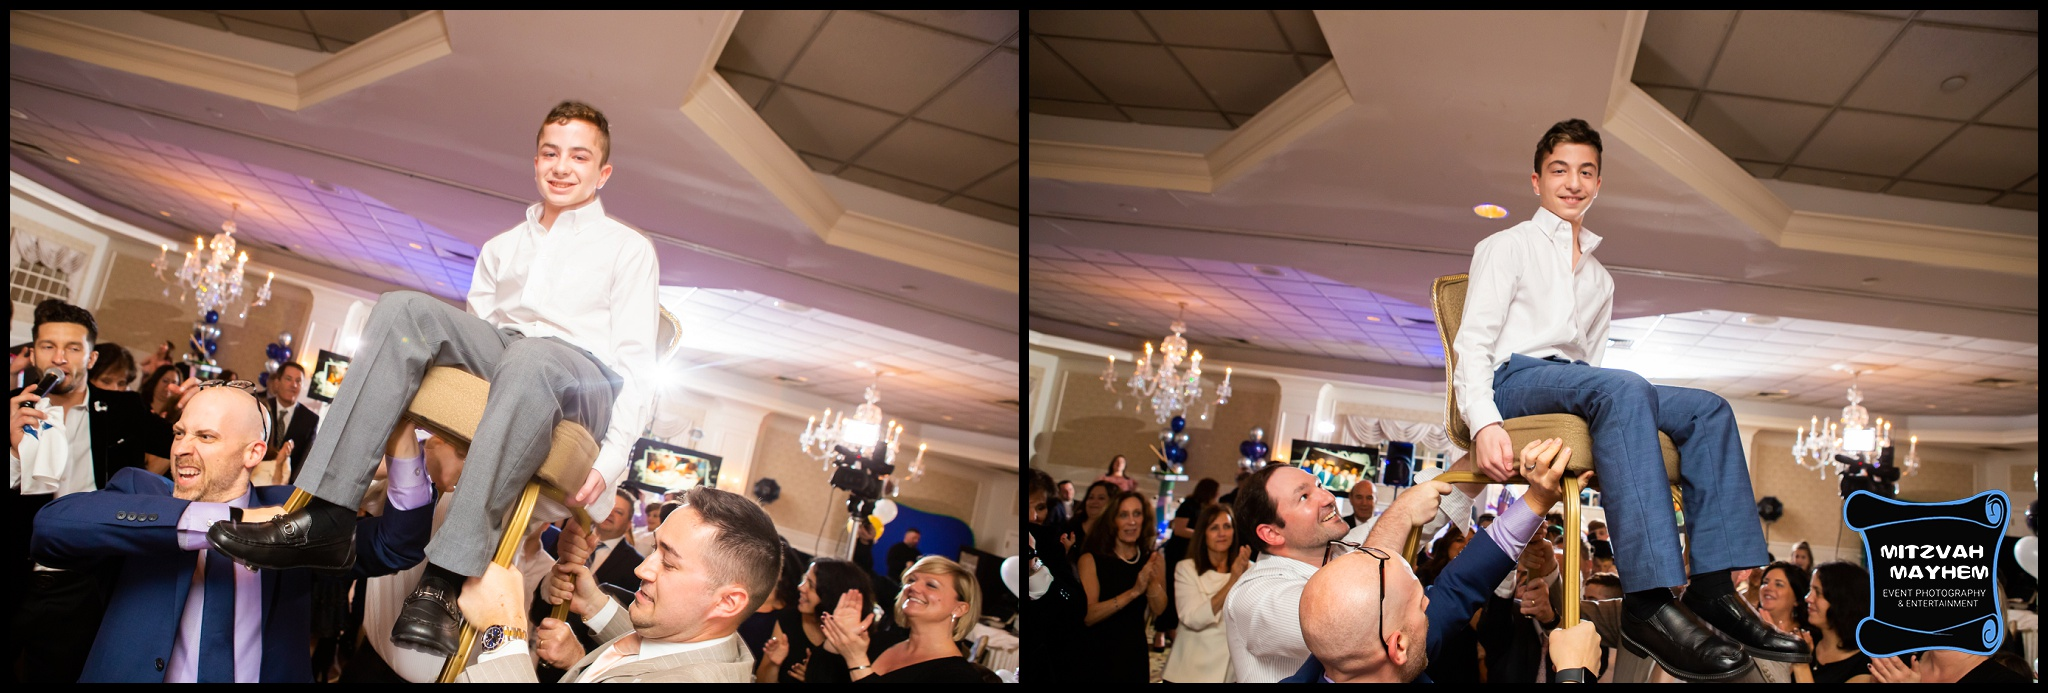 nj-mitzvah-photographer-bridgewater-manorl-18.JPG